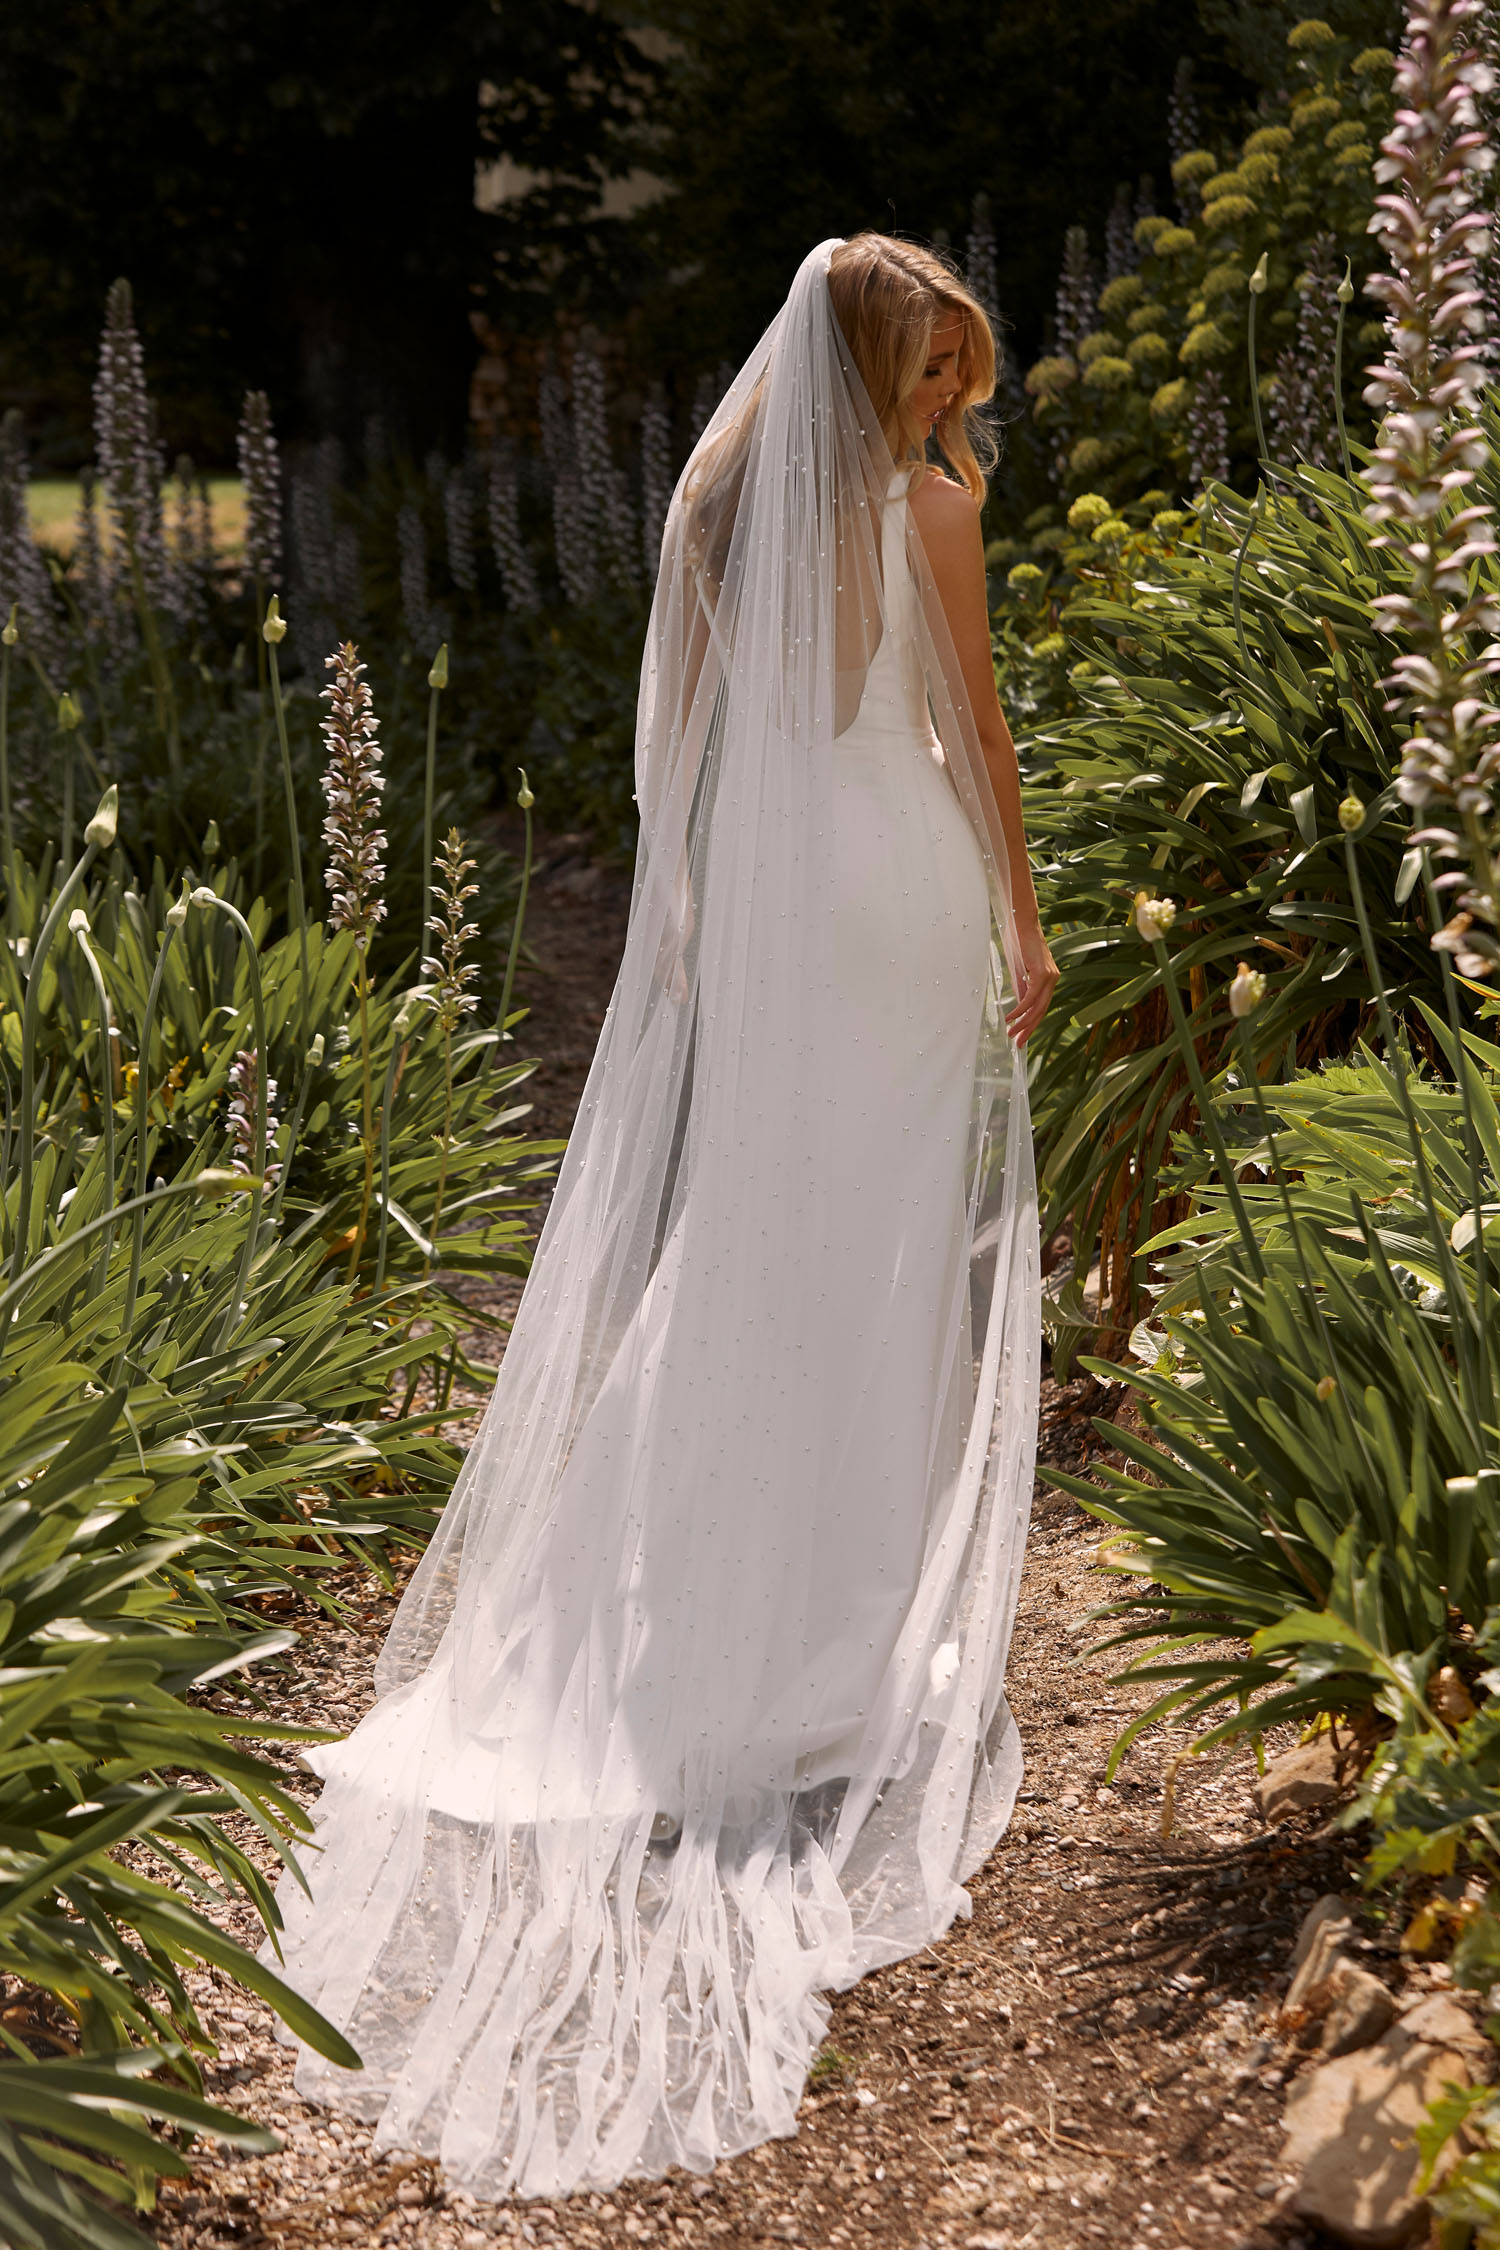 COOPER-ML21020-FULL-LENGTH-FITTED-CREPE-GOWN-WITH-PLUNGING-NECKLINE-STRAPS-LOW-BACK-WITH-ILLUSION-AND-BUTTON-BACK-ZIPPER-IN-SKIRTWEDDING-DRESS-MADI-LANE-BRIDAL.